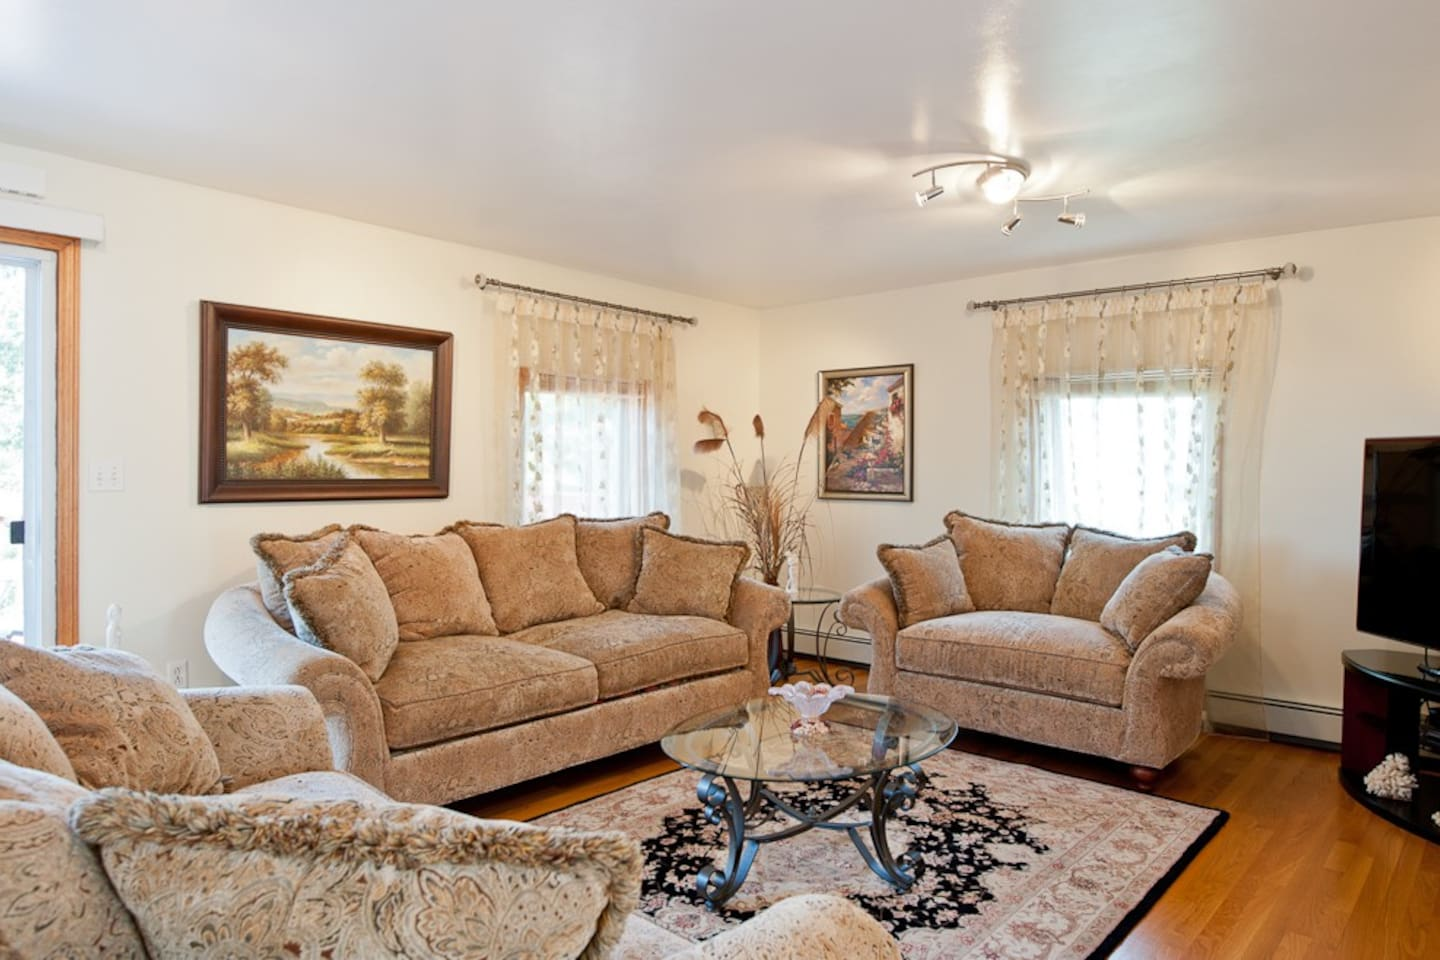 Boston BnB - Your Home Away from Home!!!